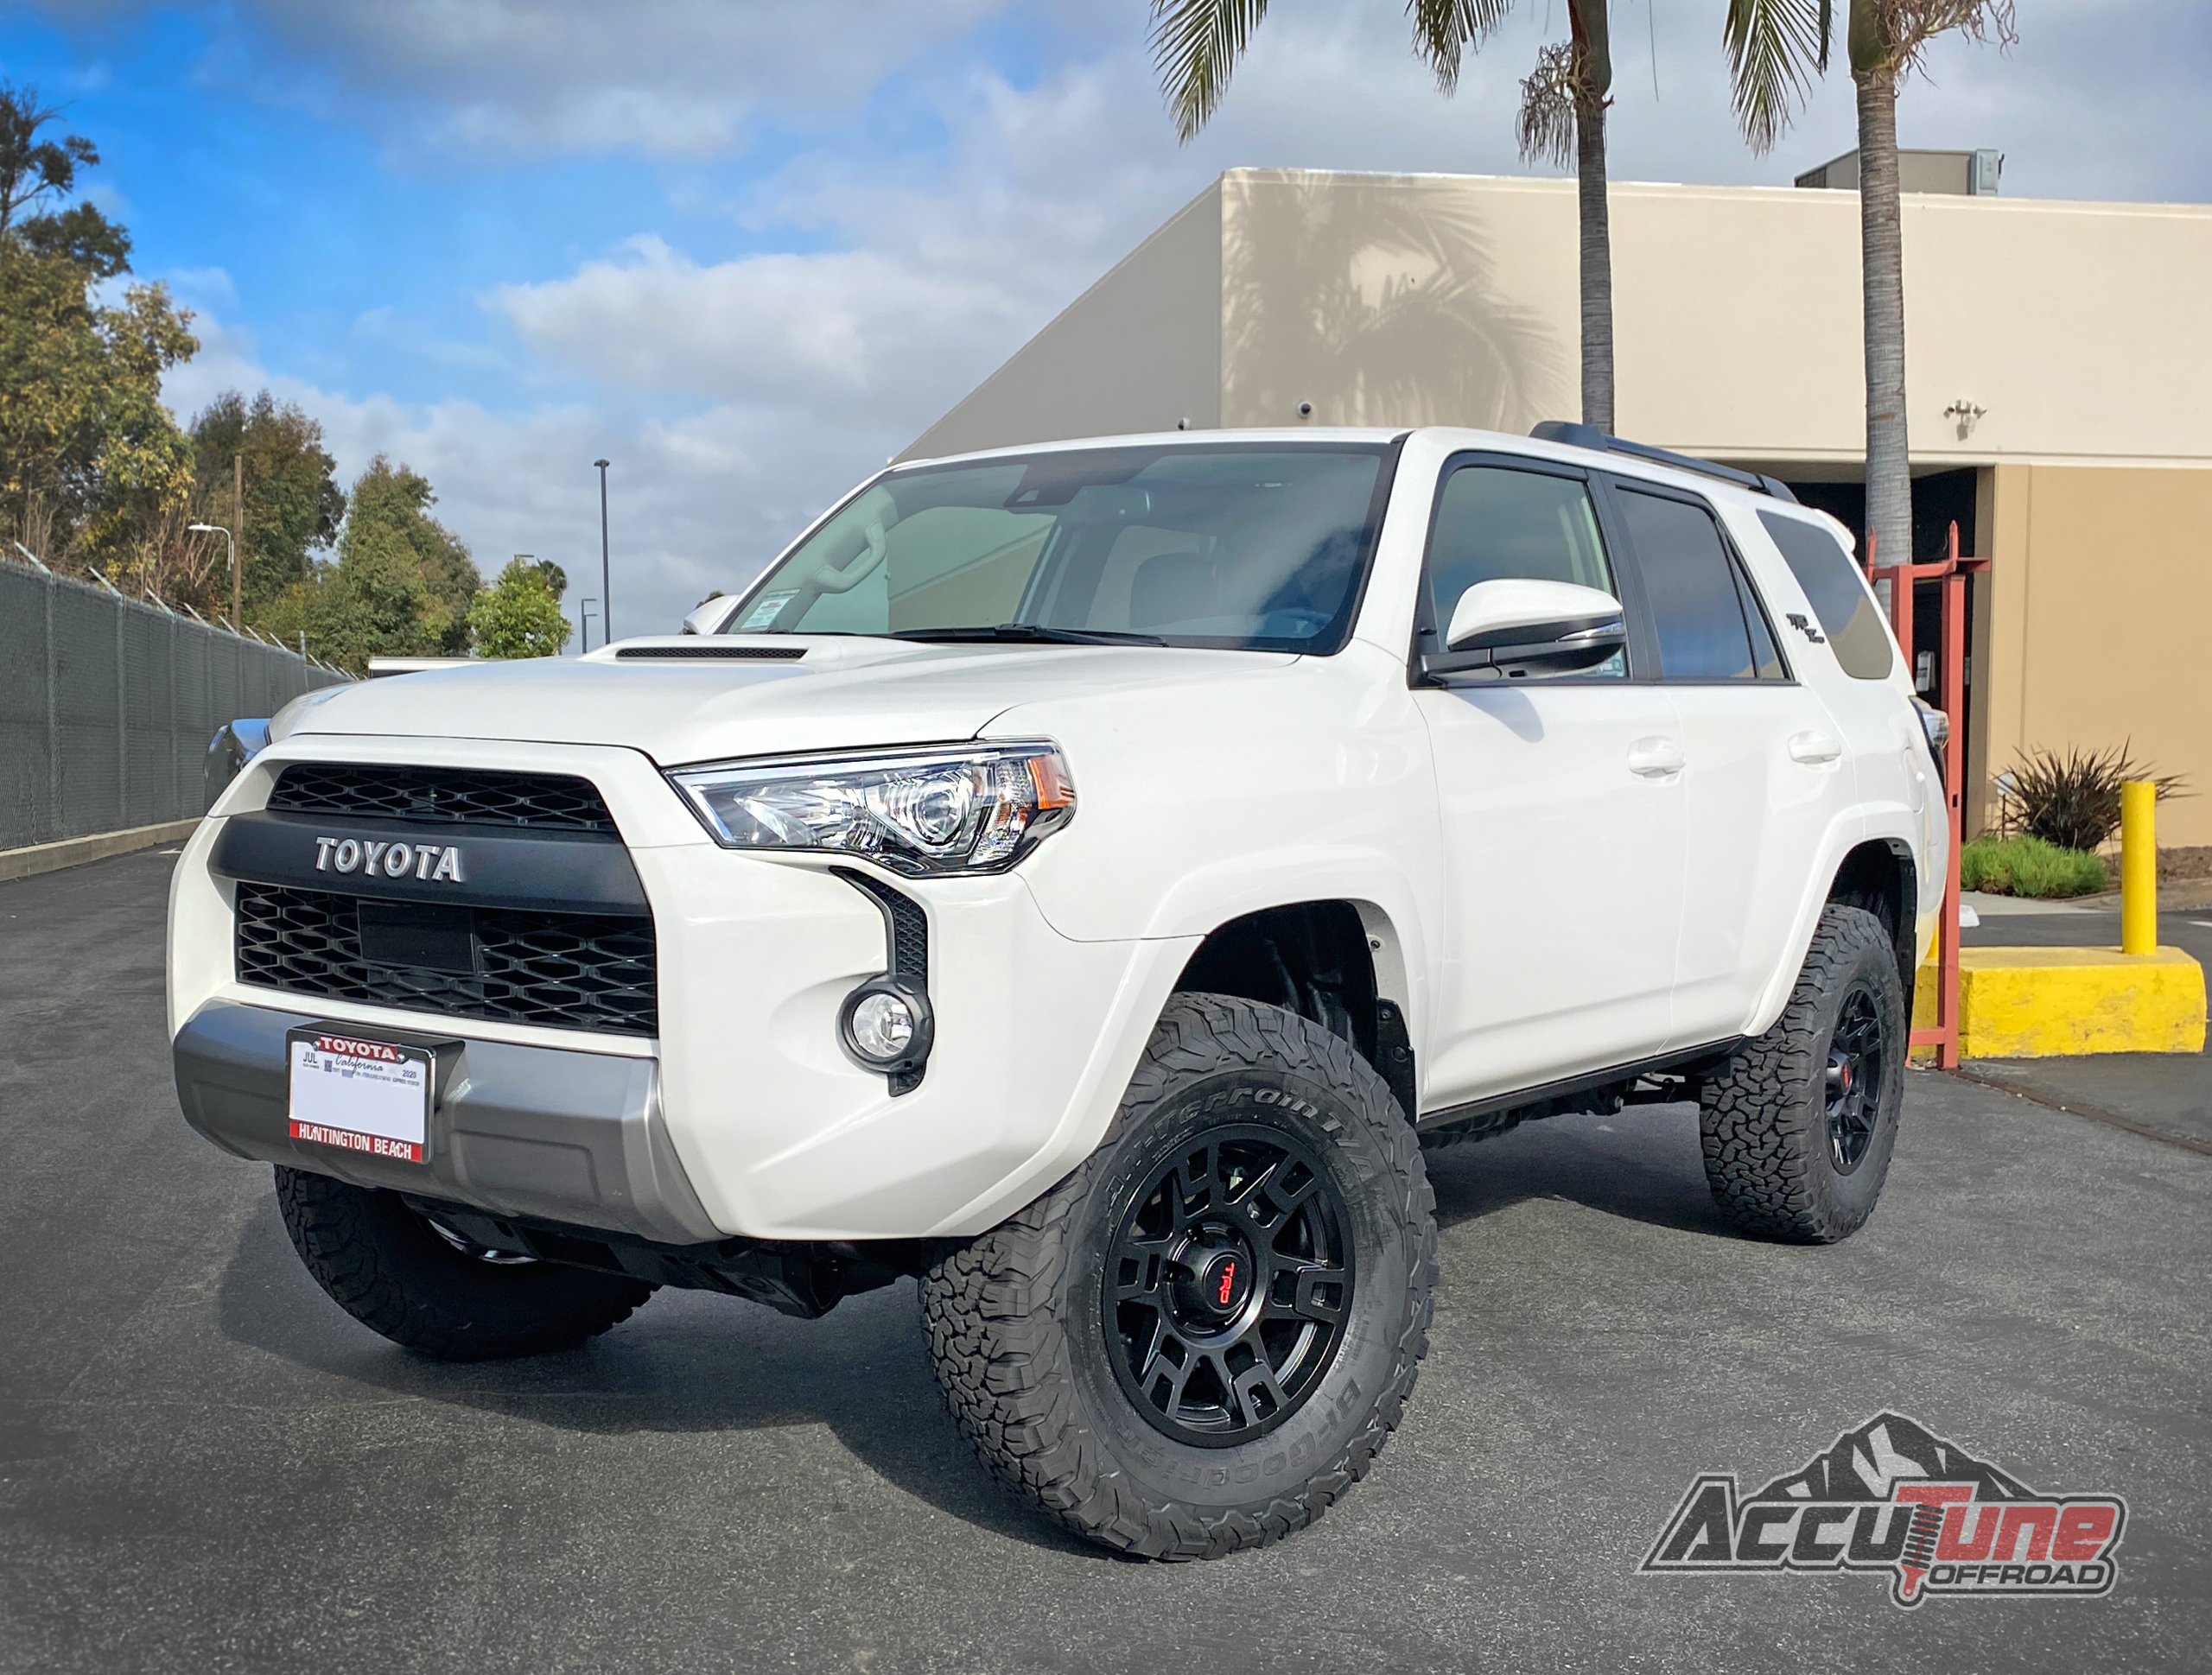 03 4runner And 10 Fj Cruiser Mid Travel Suspension Kit Icon Rear Lift Spring Stage 2 Fox Accutune Off Road